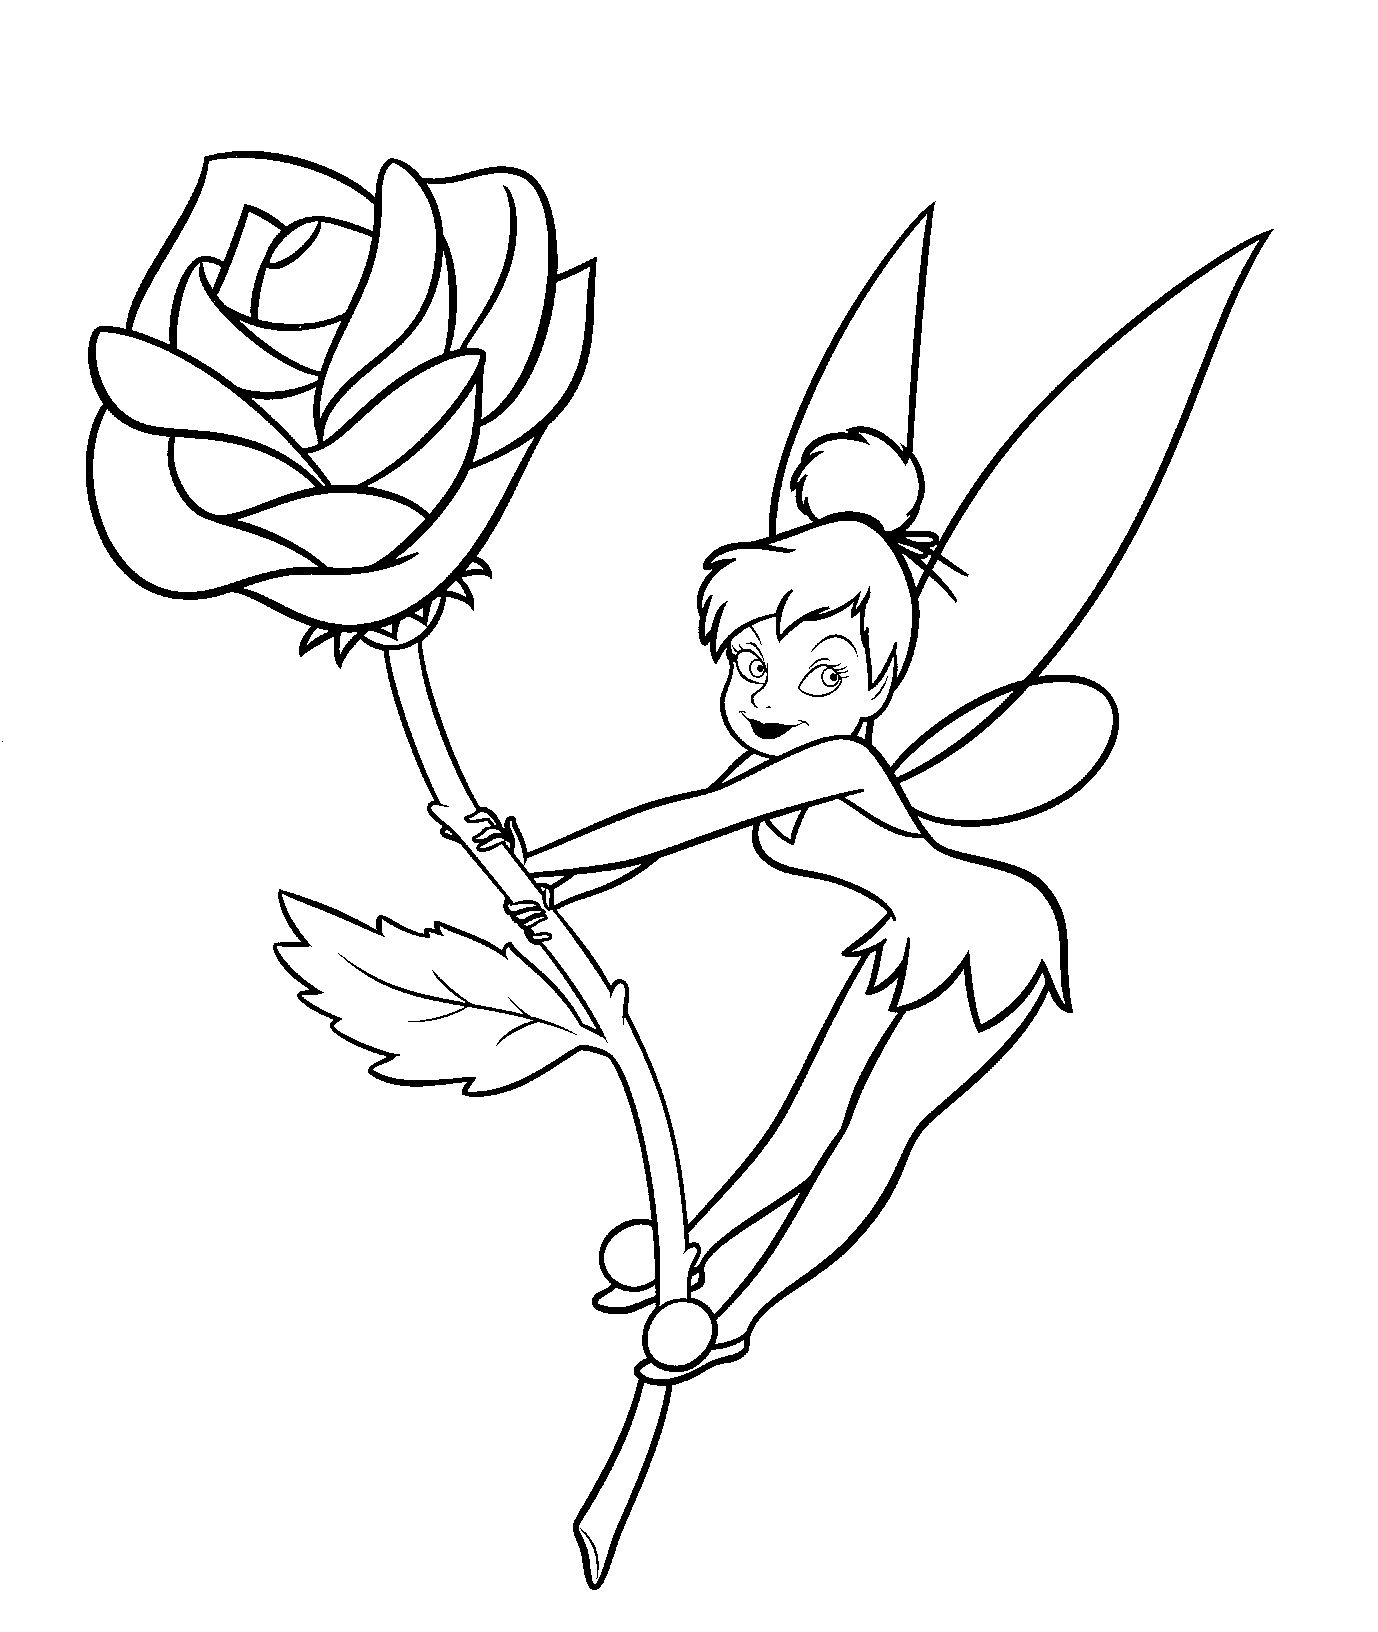 tinkerbell coloring tinkerbell coloring pages team colors coloring tinkerbell